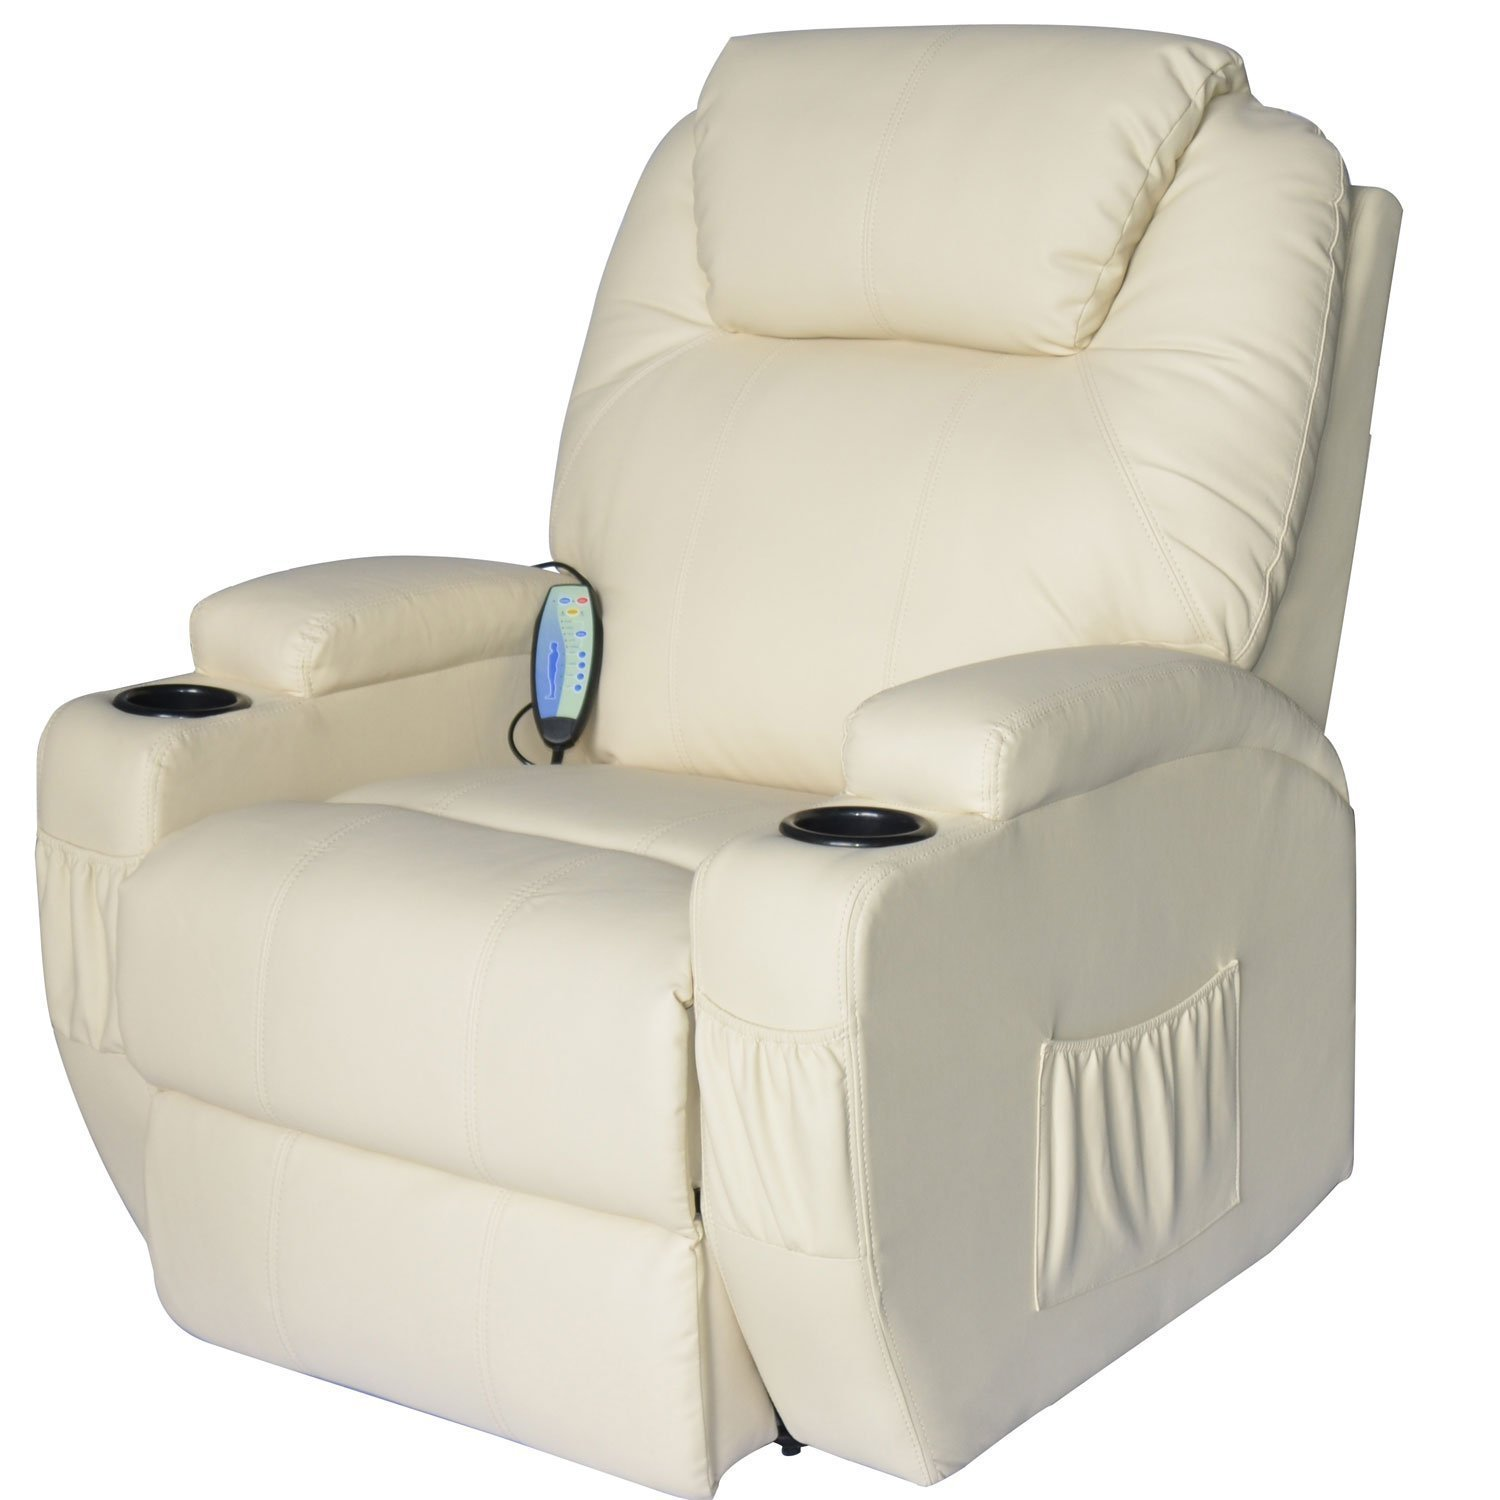 Image of: The Recliner Massage Chair